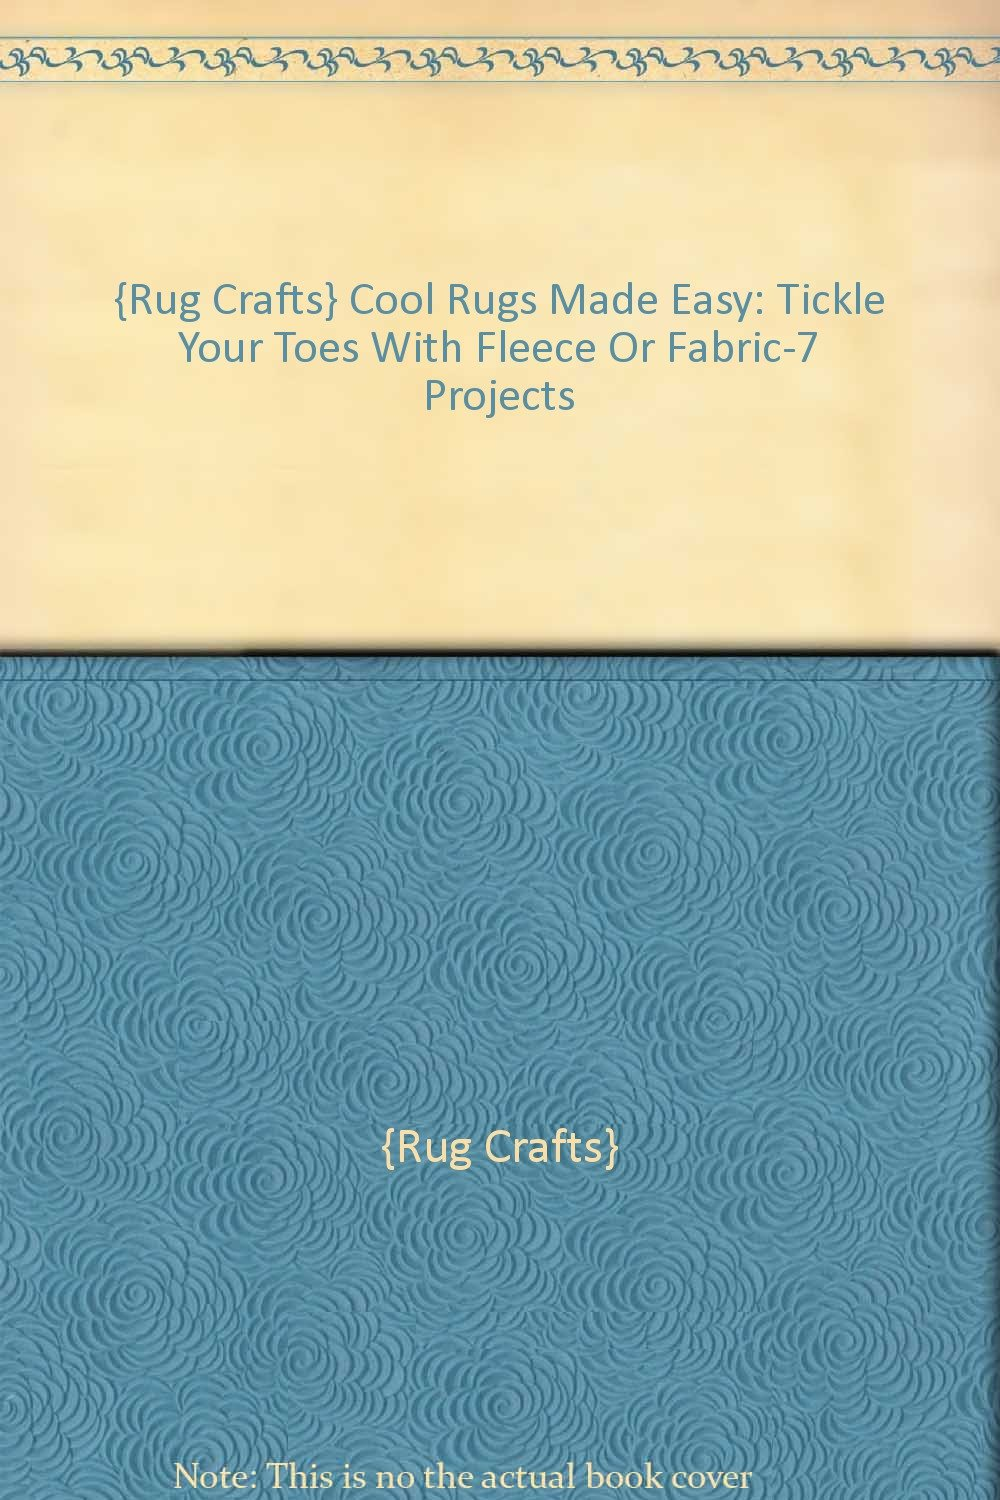 {Rug Crafts} Cool Rugs Made Easy: Tickle Your Toes With Fleece Or Fabric-7 Projects